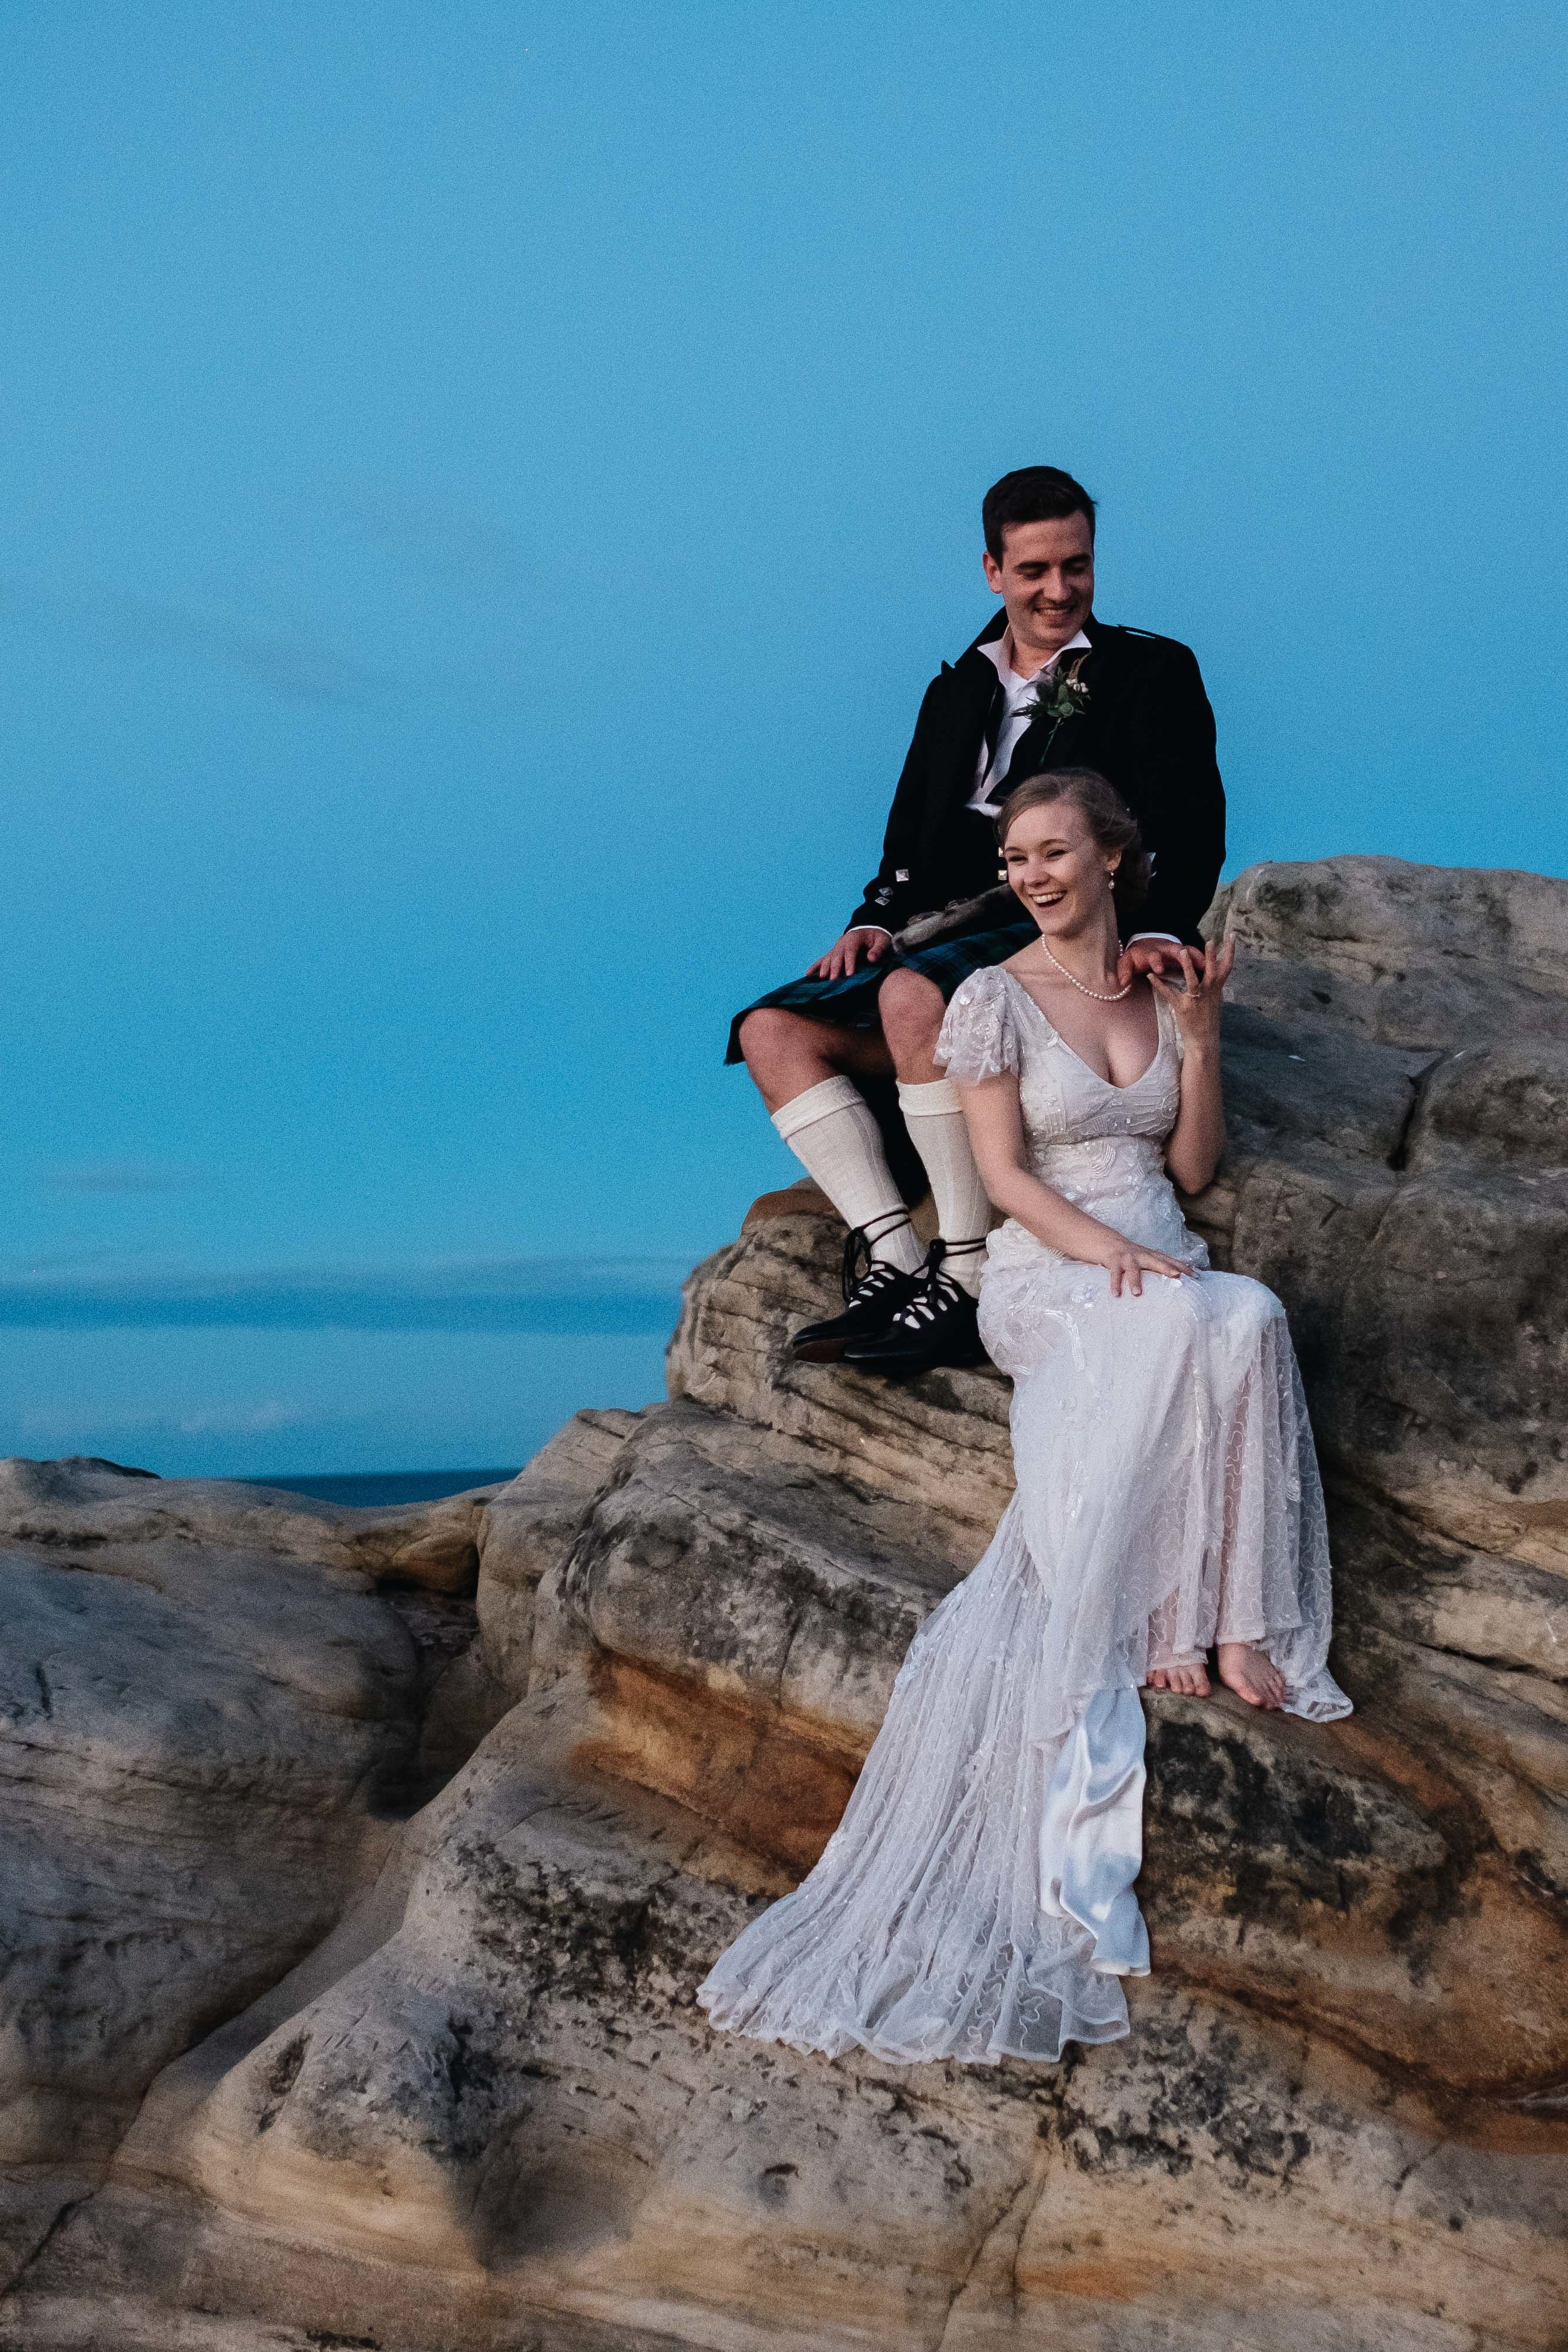 A bride and groom are sitting on a rock.